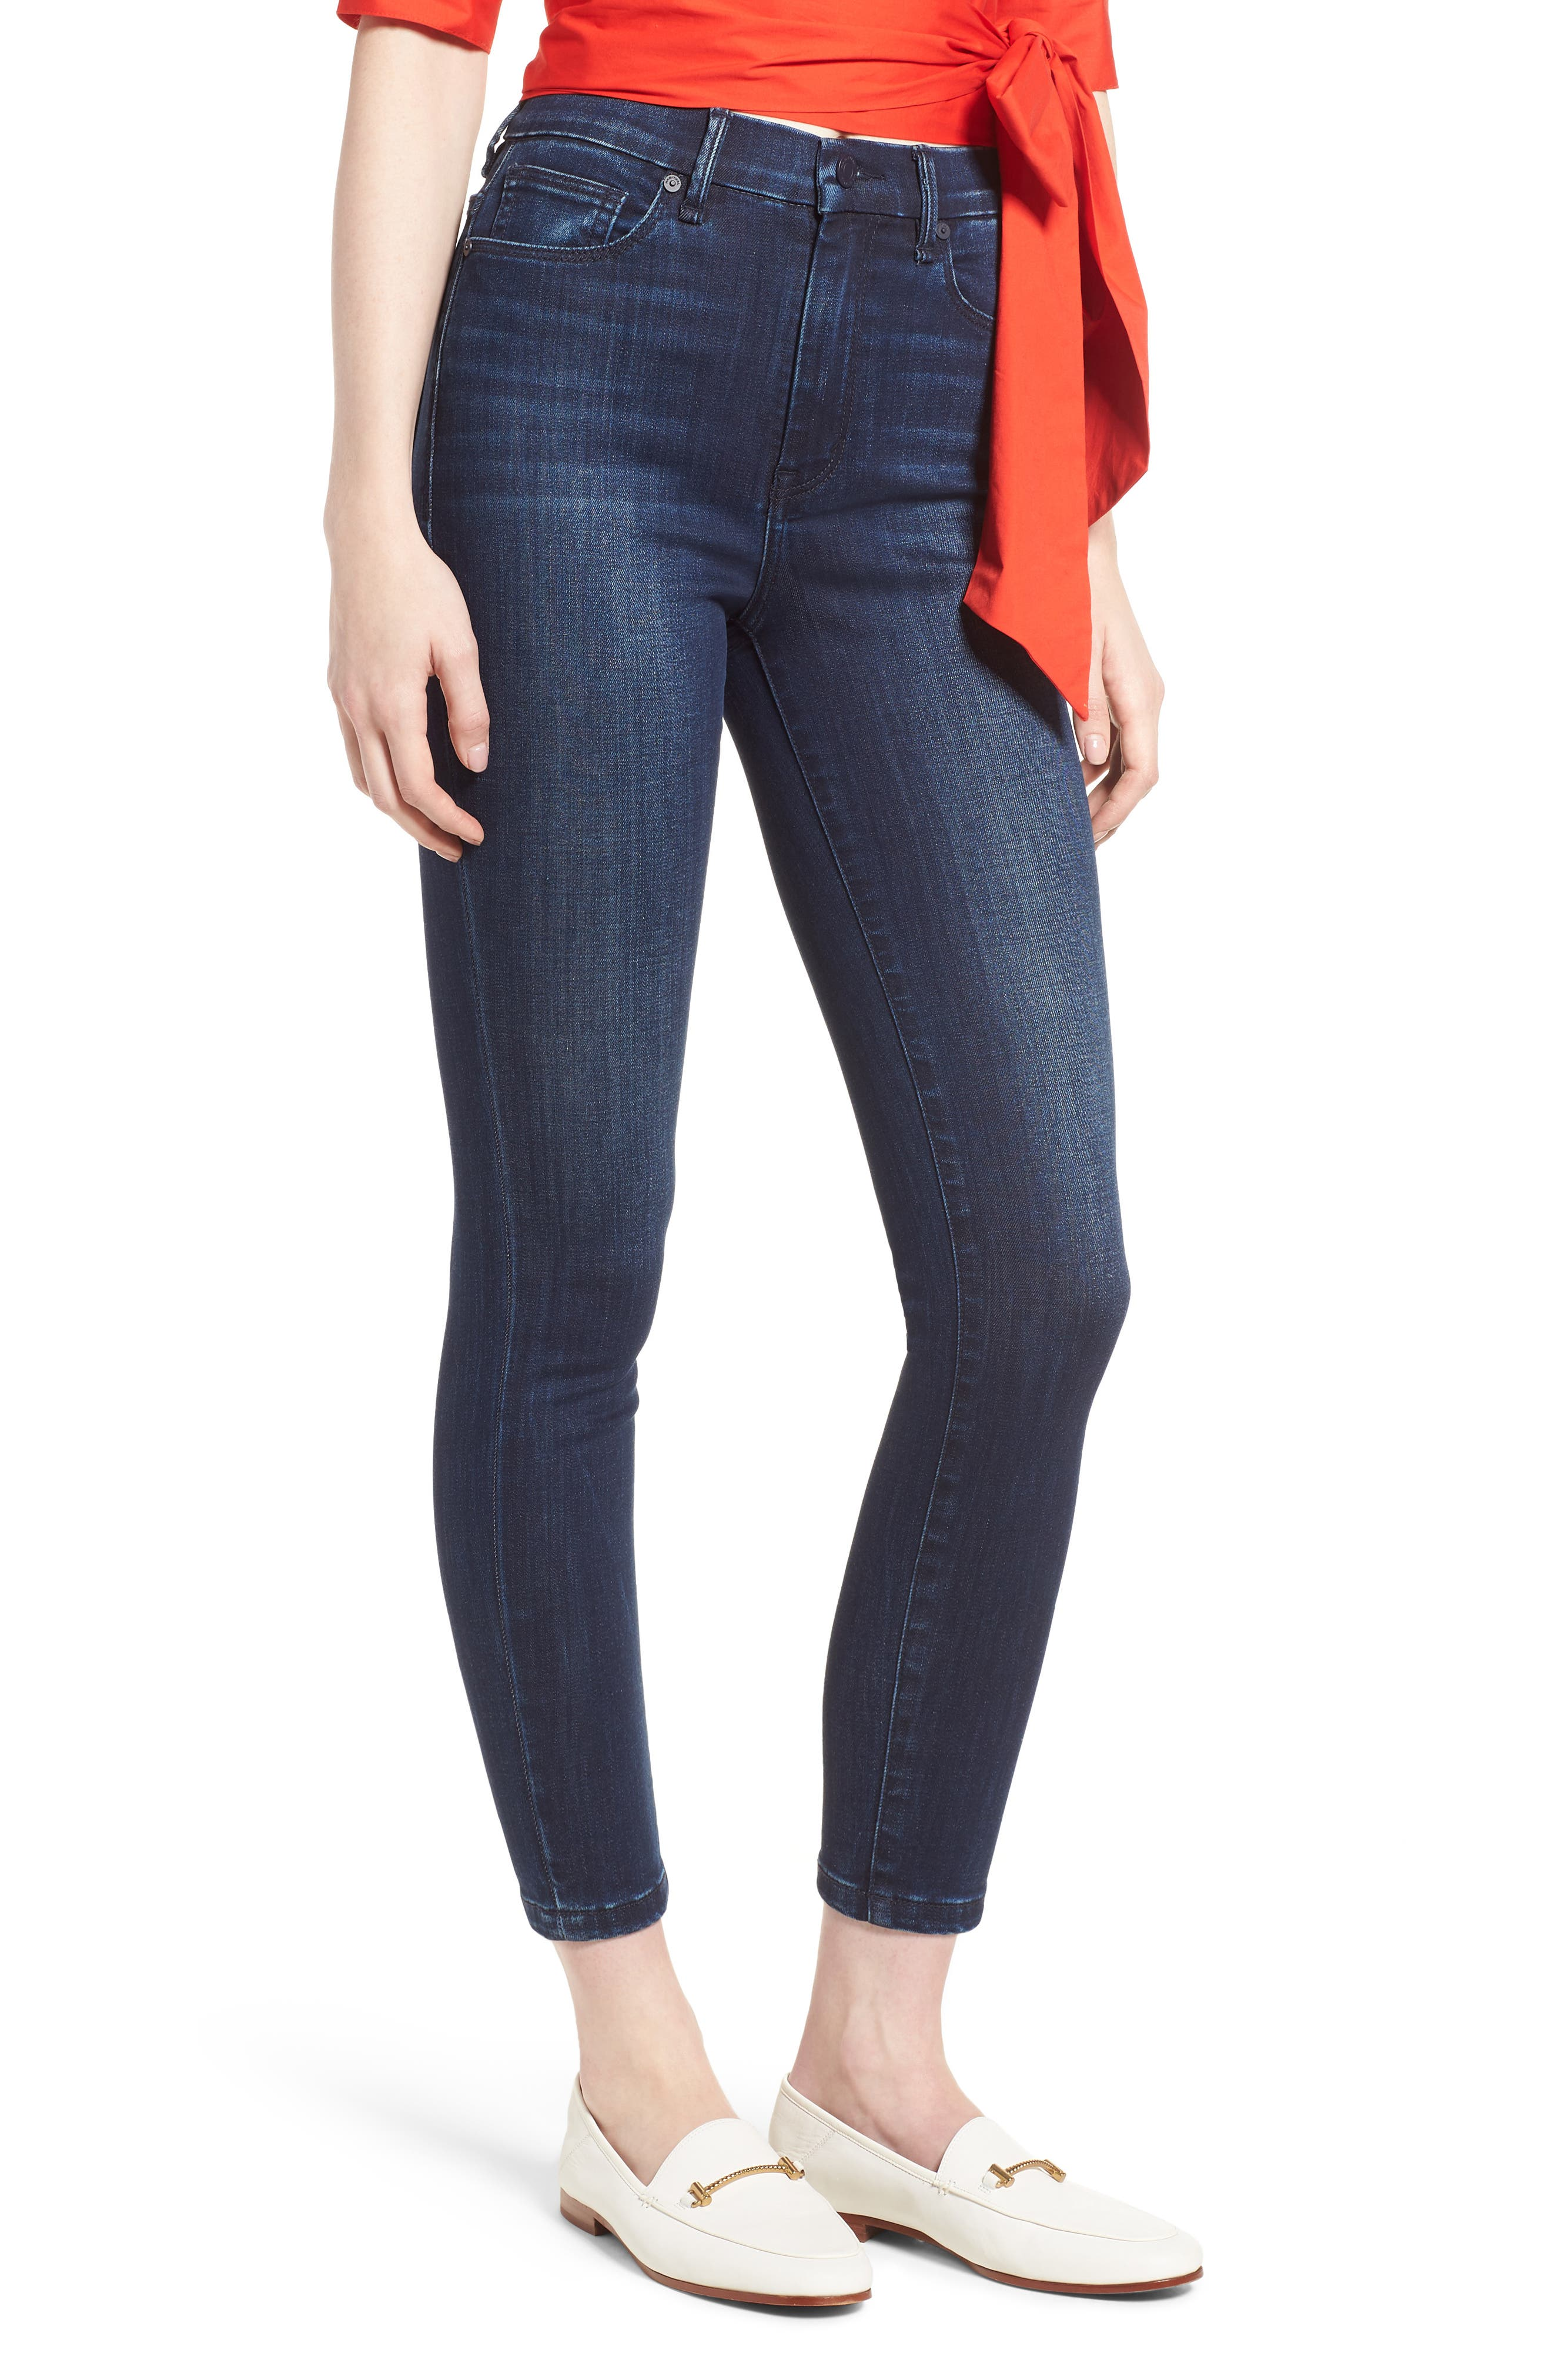 Cressa High Rise Ankle Skinny Jeans,                             Main thumbnail 1, color,                             SUGAR MAPLE